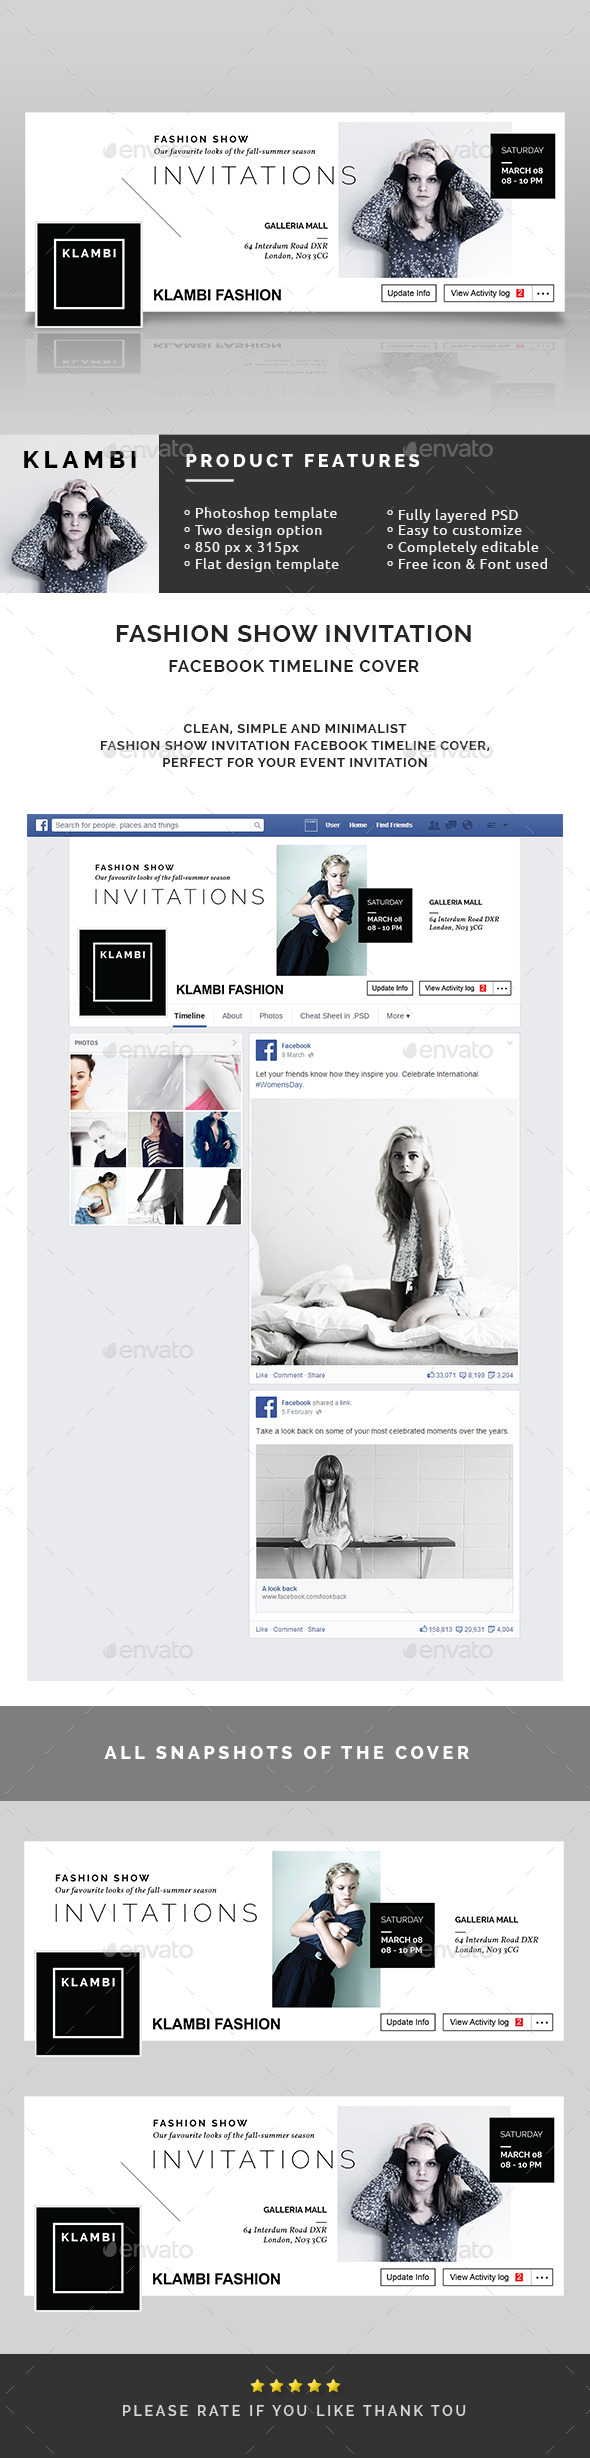 GraphicRiver Fashion Show Invitation Facebook Timeline Covers 10618337